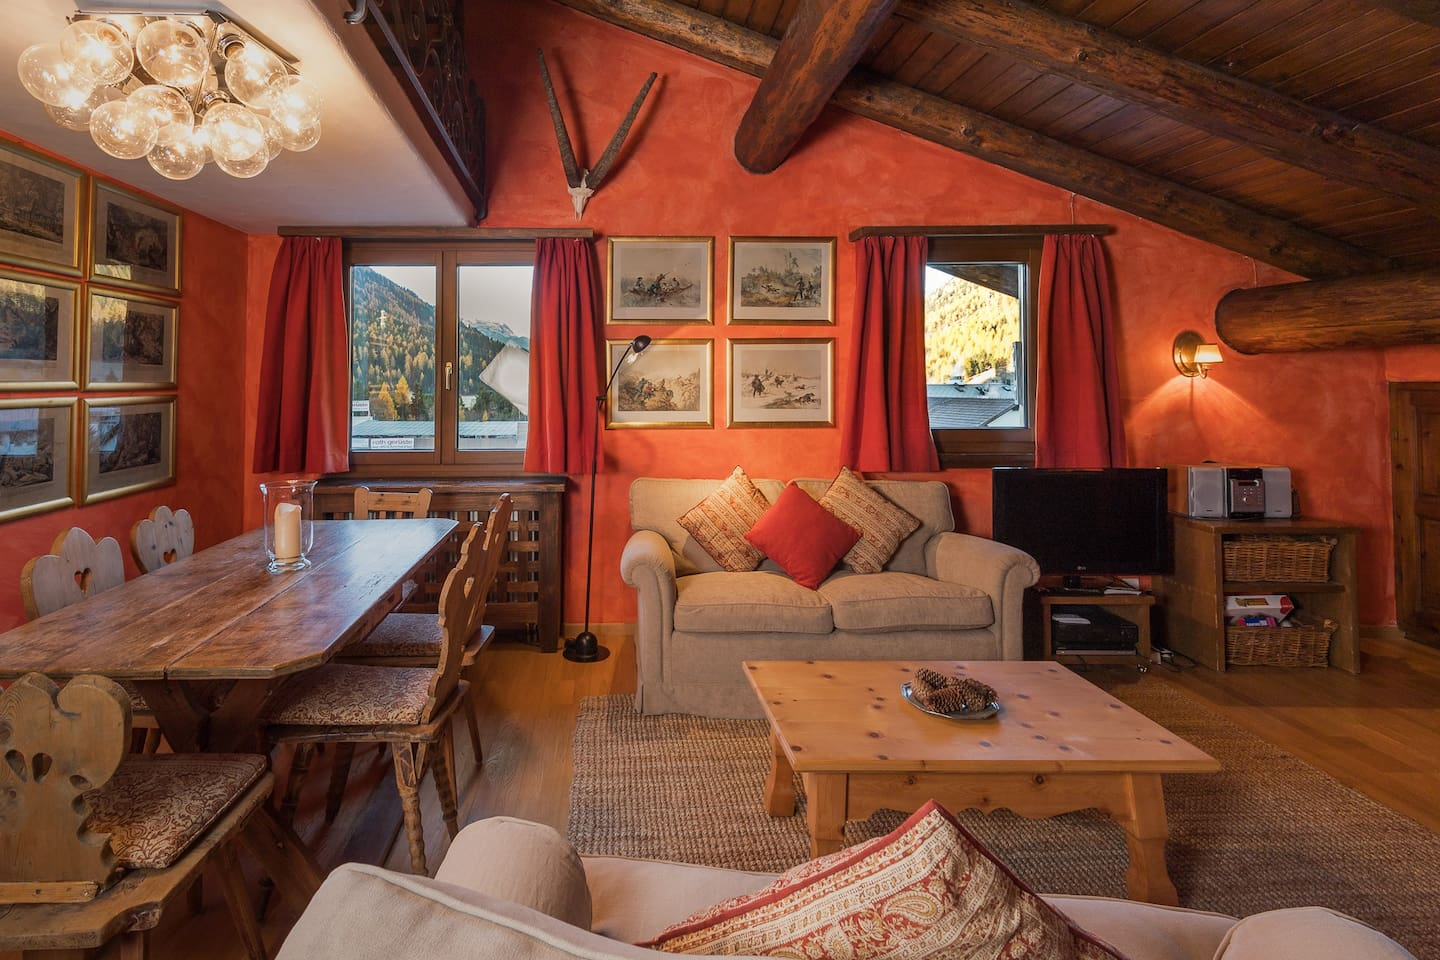 COSY AND ROMANTIC GETAWAY IN THE HEART OF THE ENGADINE VALLEY